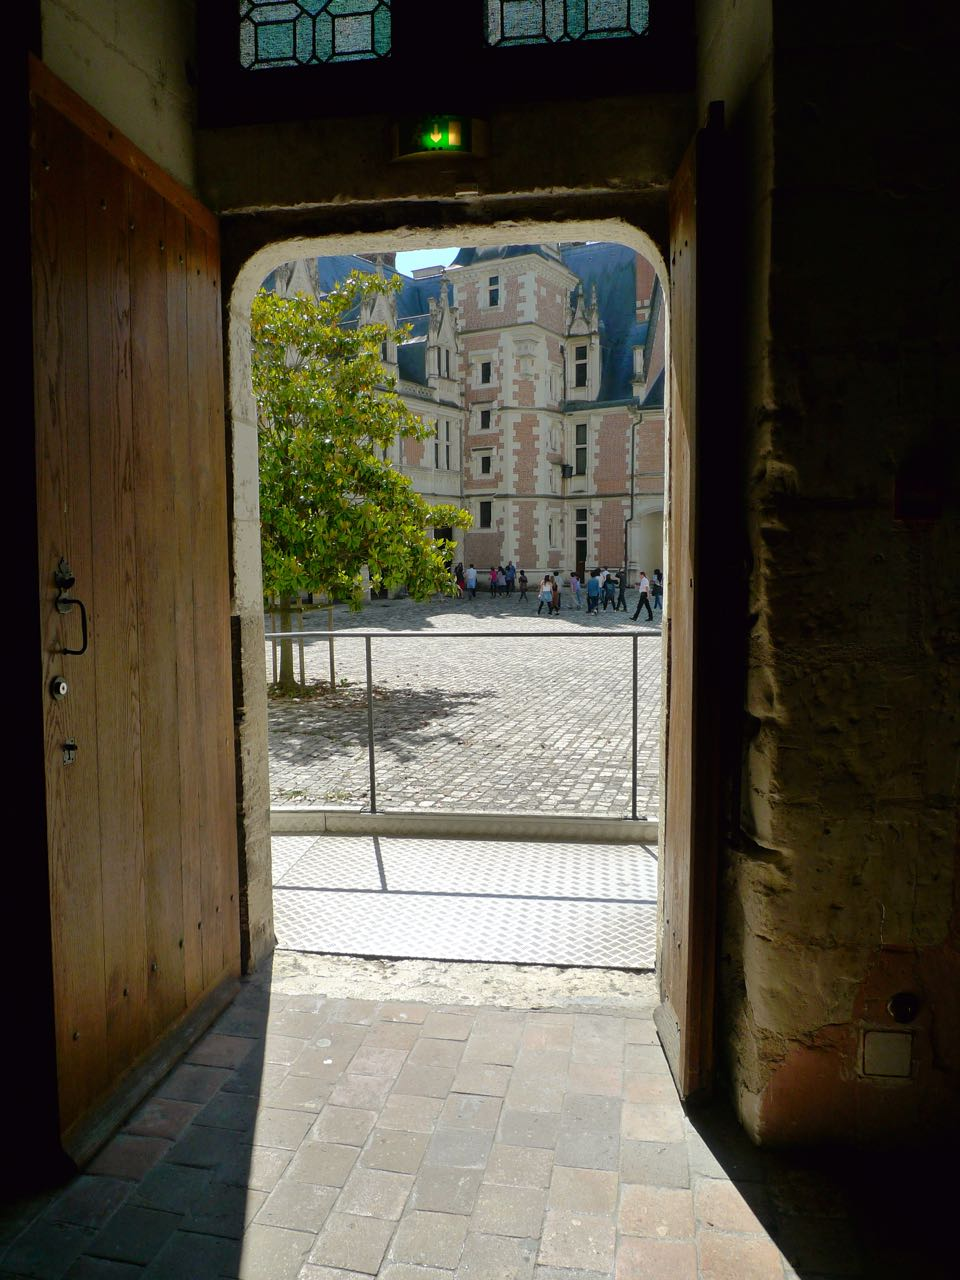 A view back into the impressive courtyard